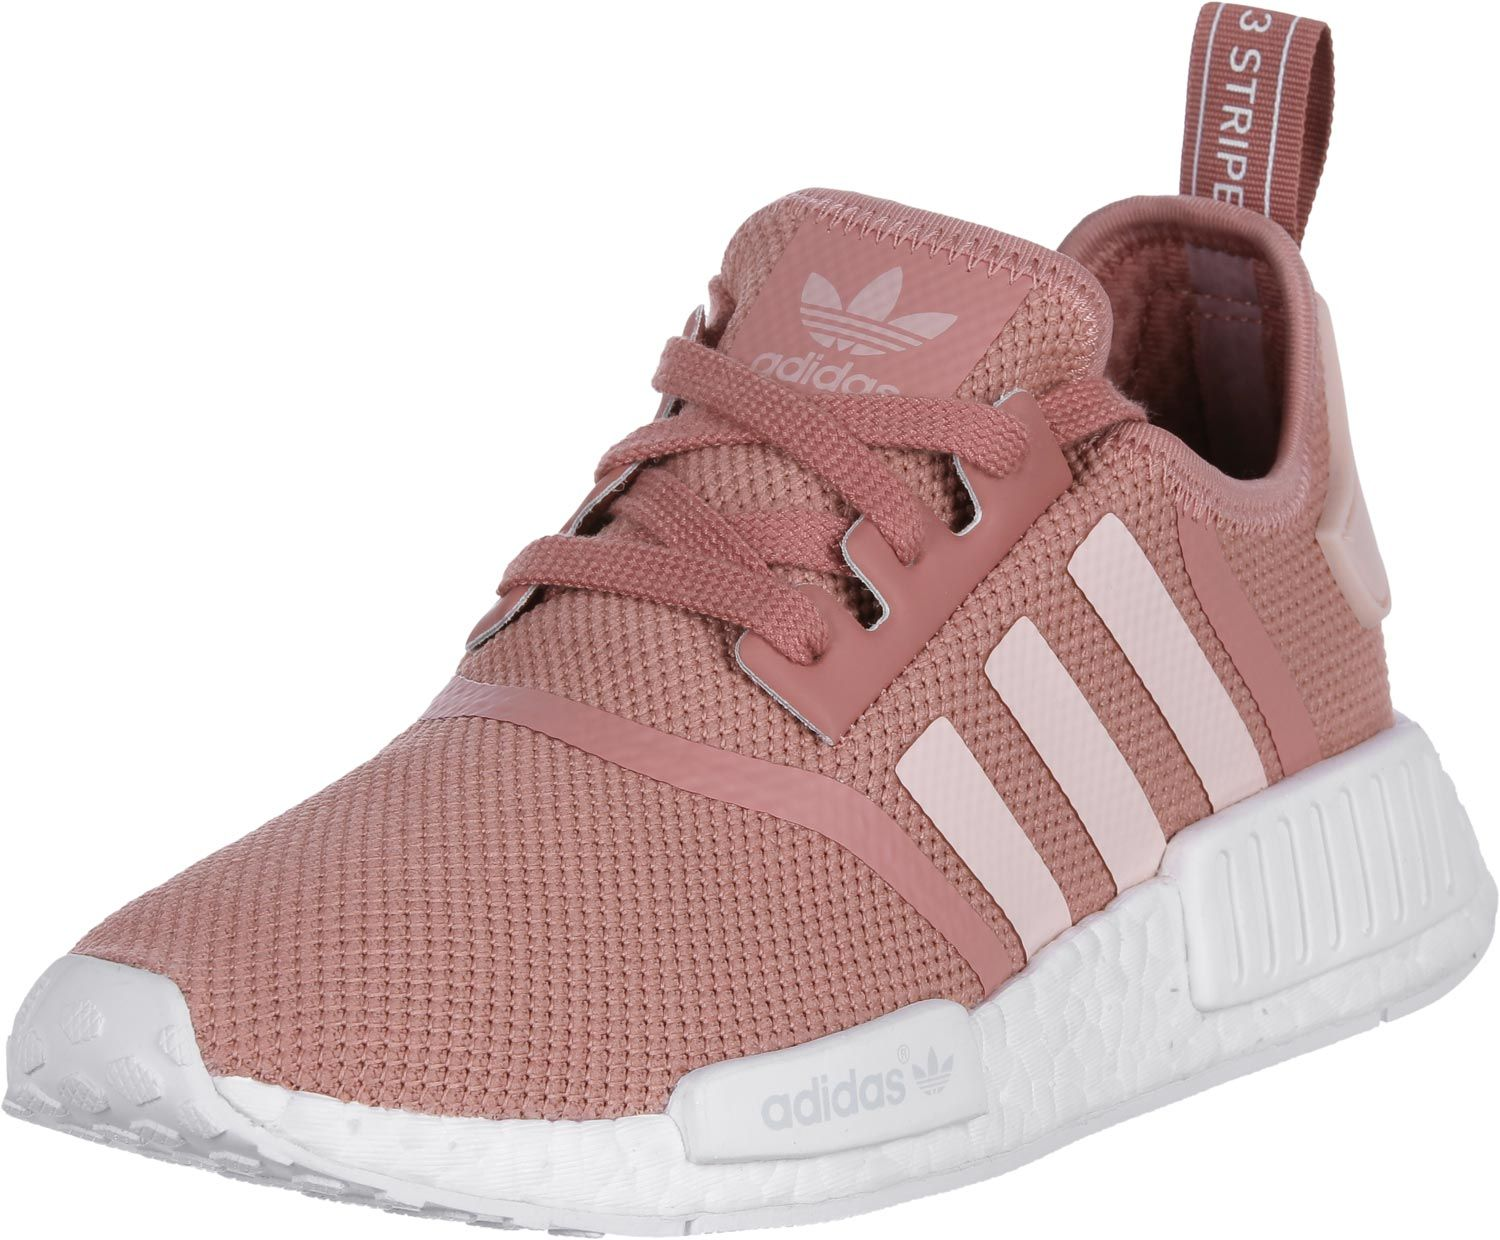 adidas nmd r1 dames roze